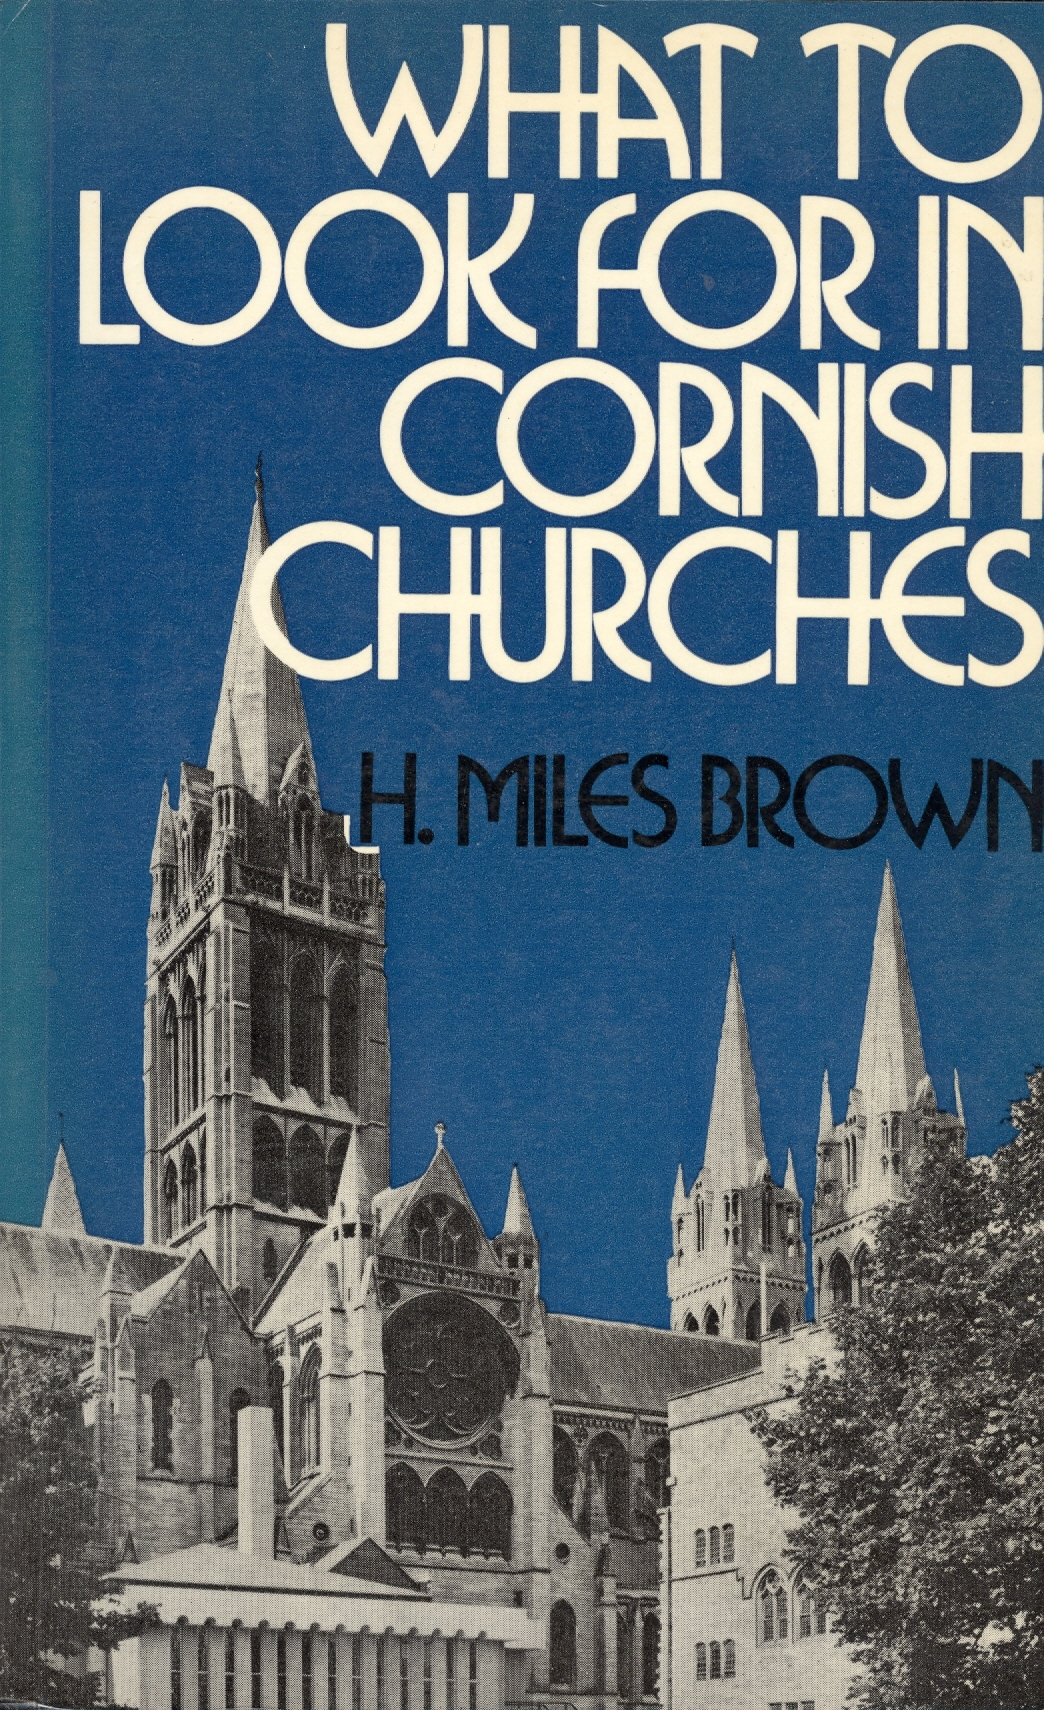 What to Look for in Cornish Churches